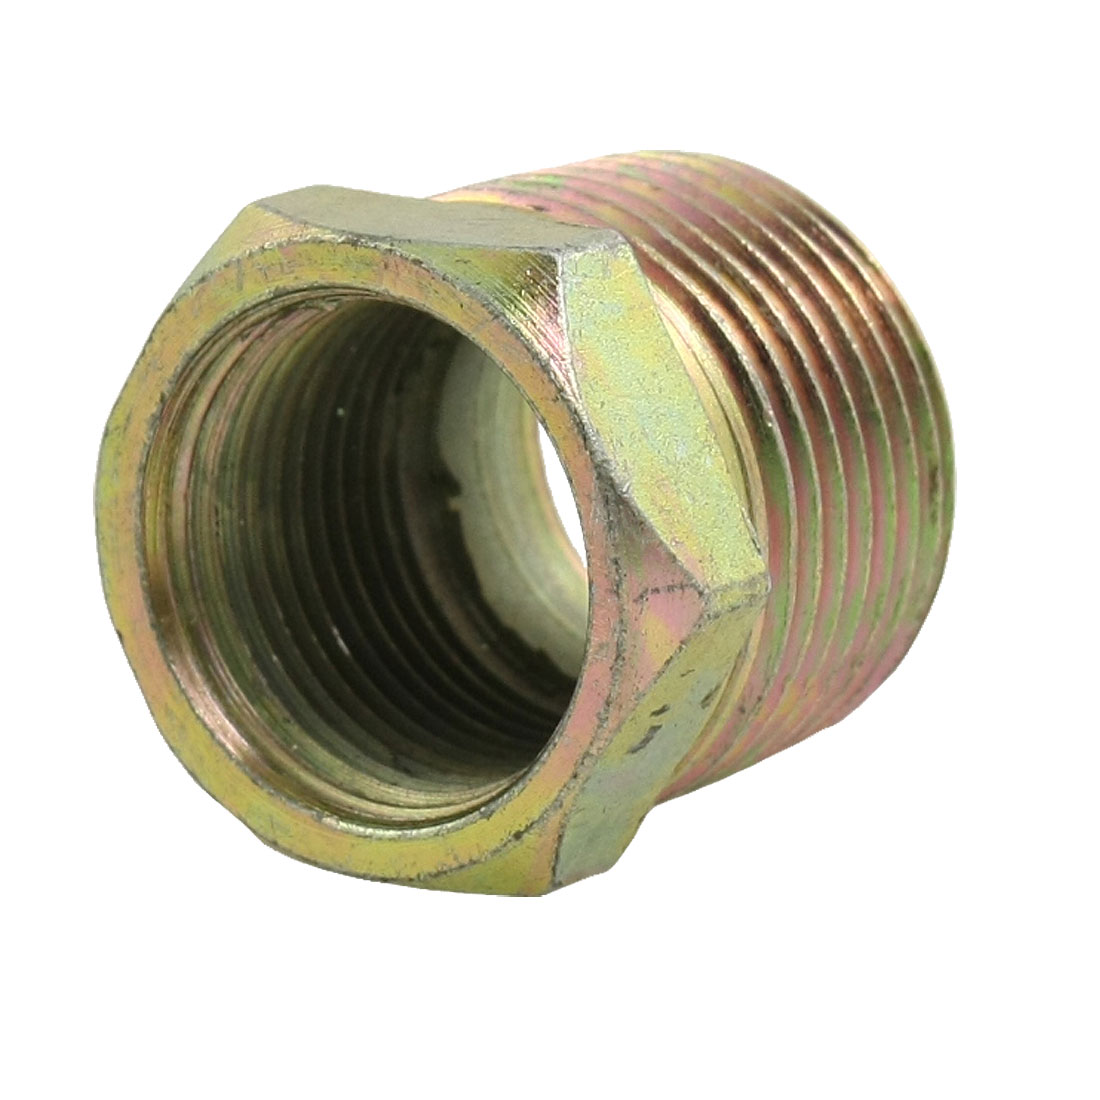 "Metal 1 3/10"" x 31/32"" Hex Bush Reducer Plumbing Fitting Adapter"